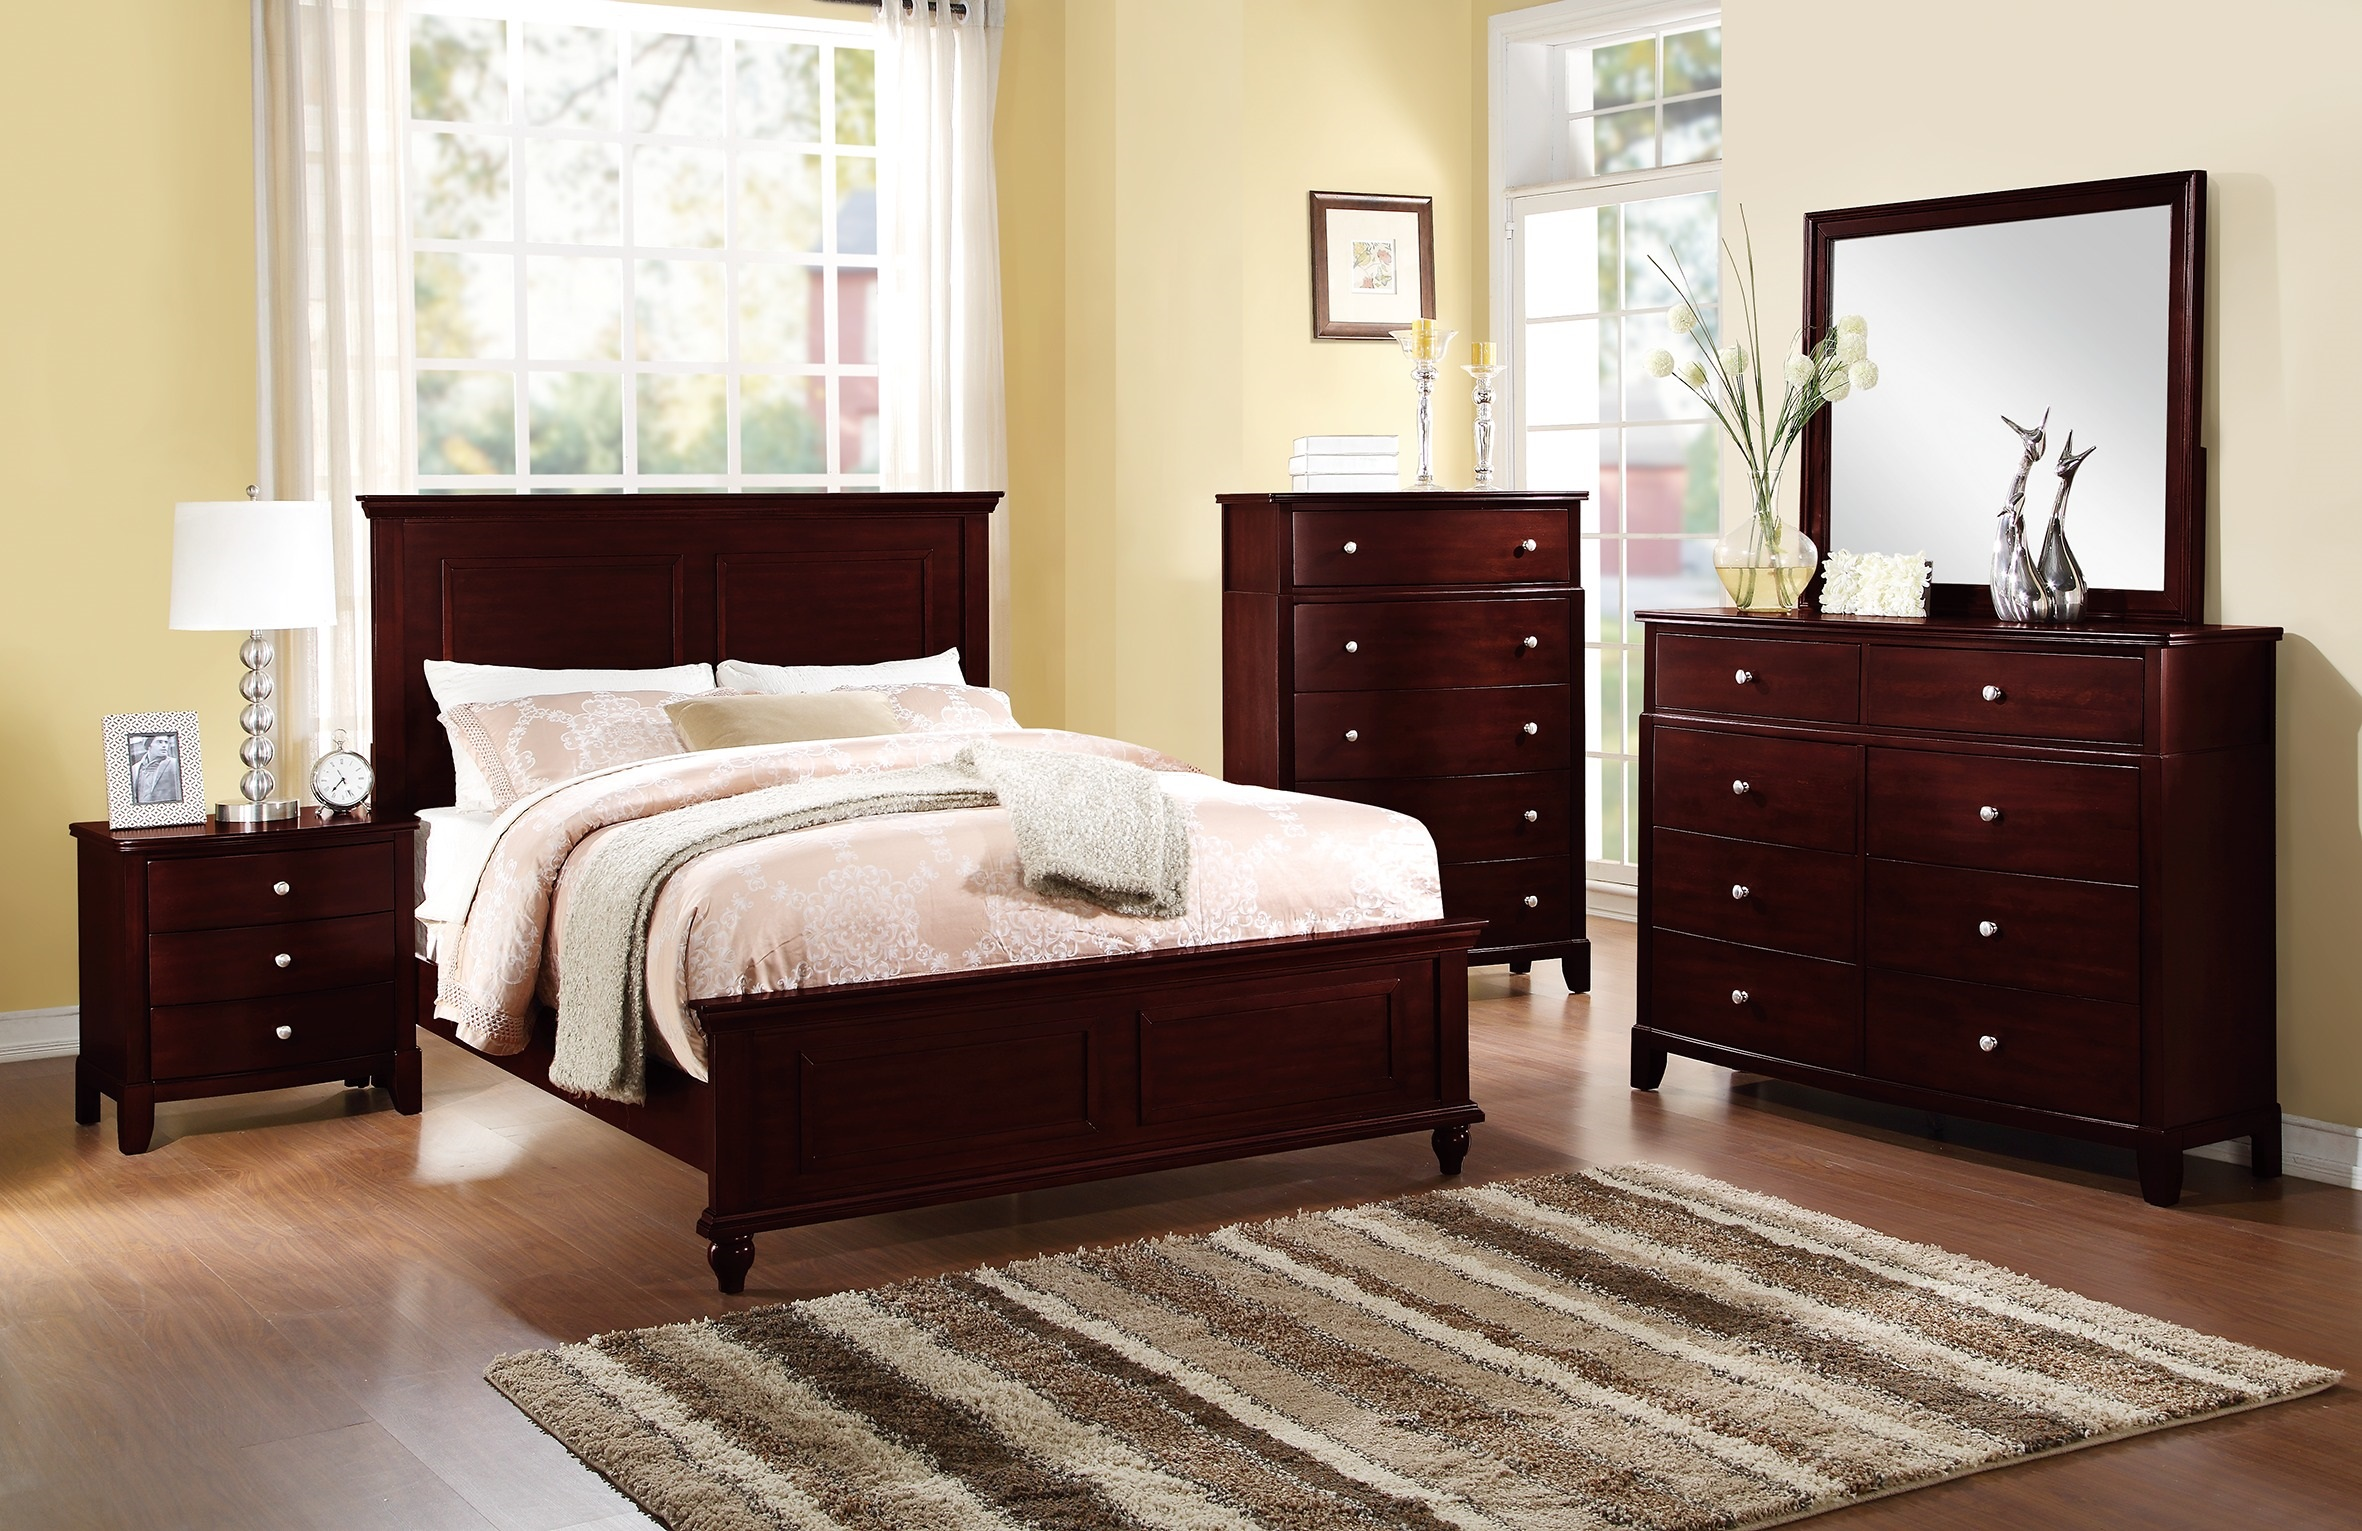 Country Living Bedroom Furniture Classic Dark Brown Color